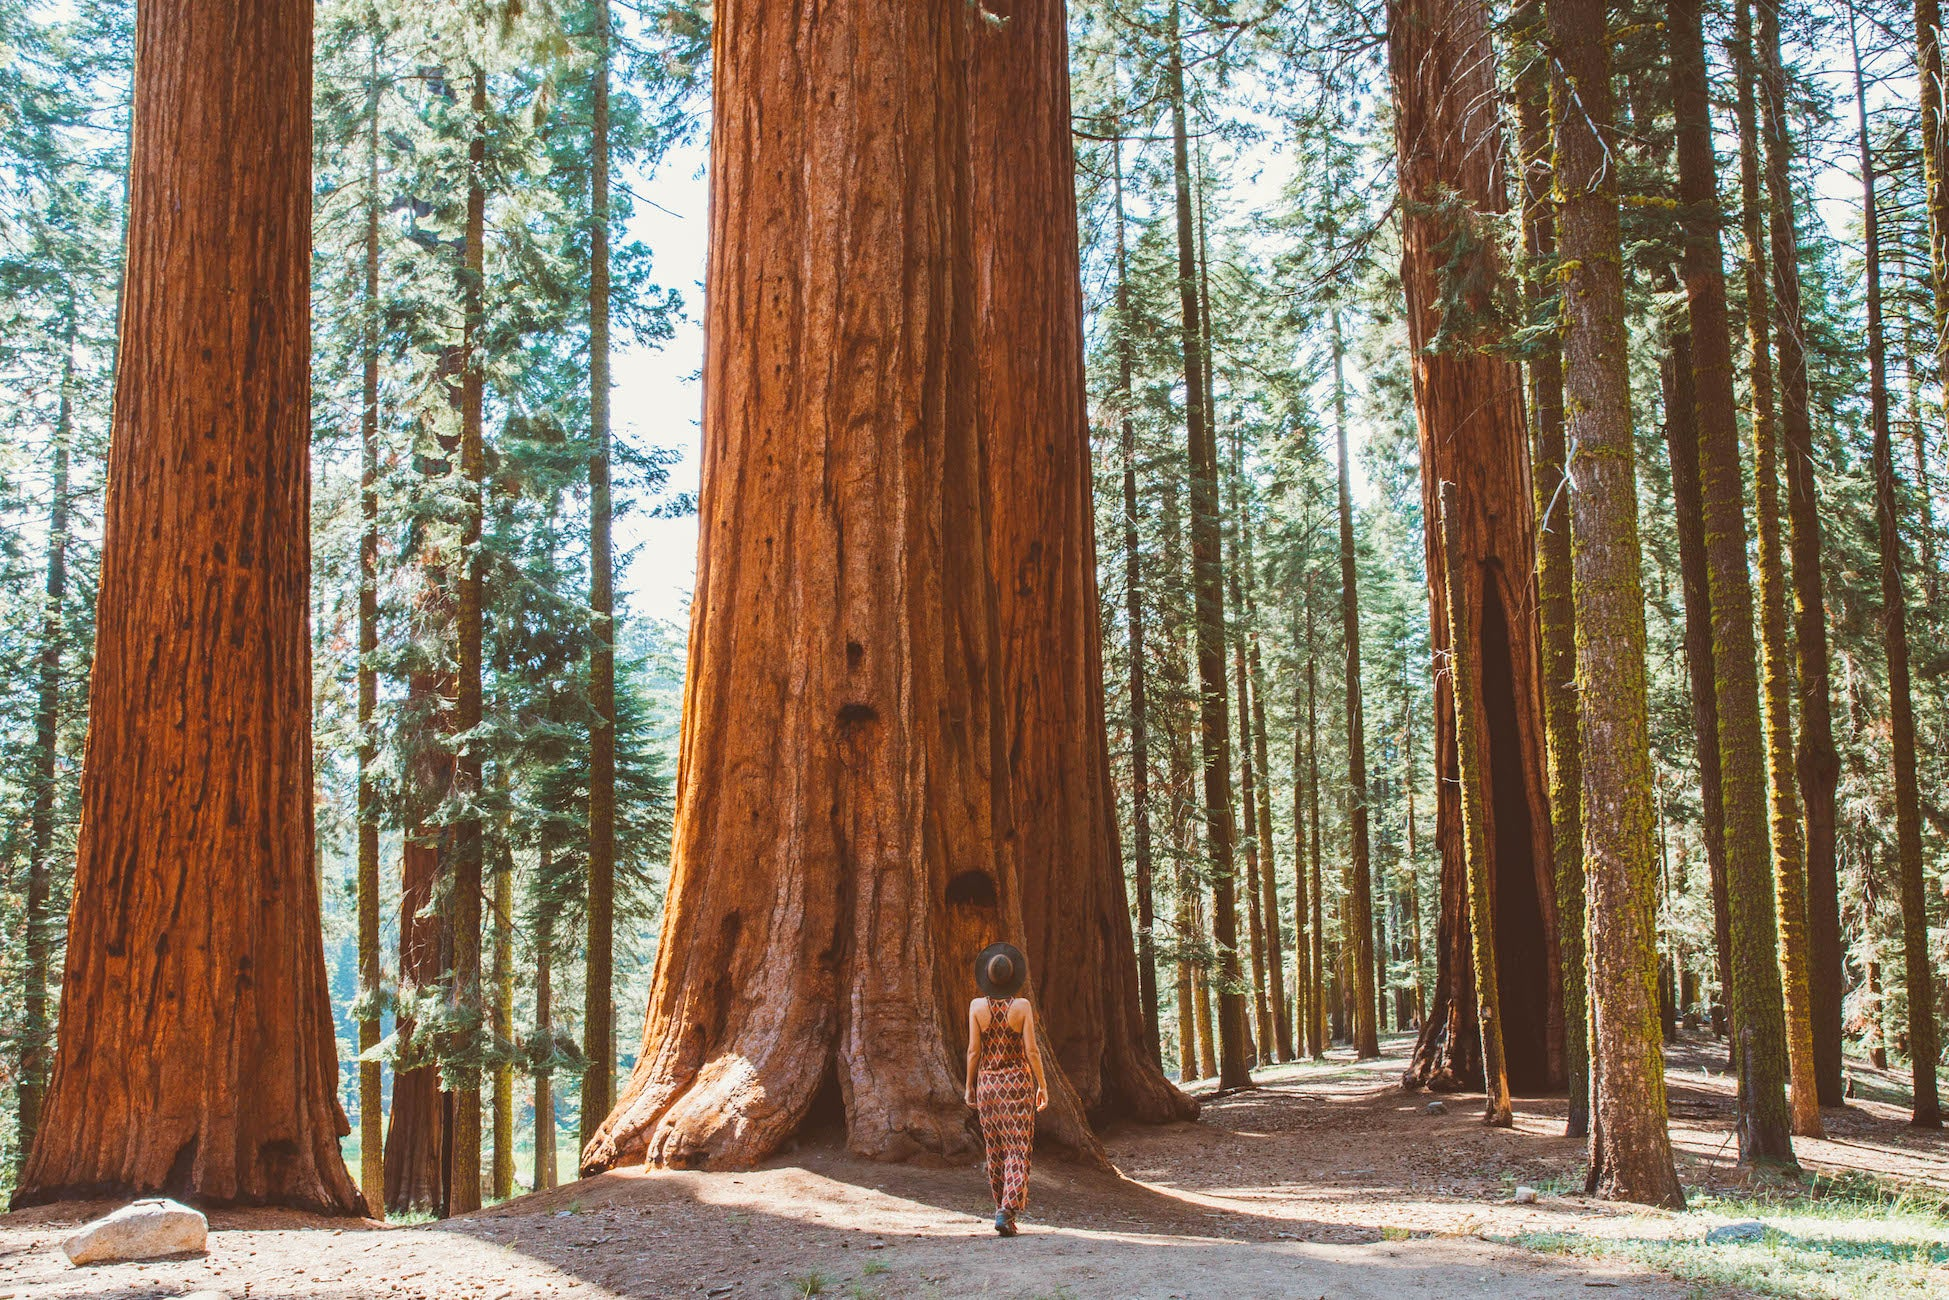 Woman stands in front of an enormous redwood tree in a grove of many tall trees.